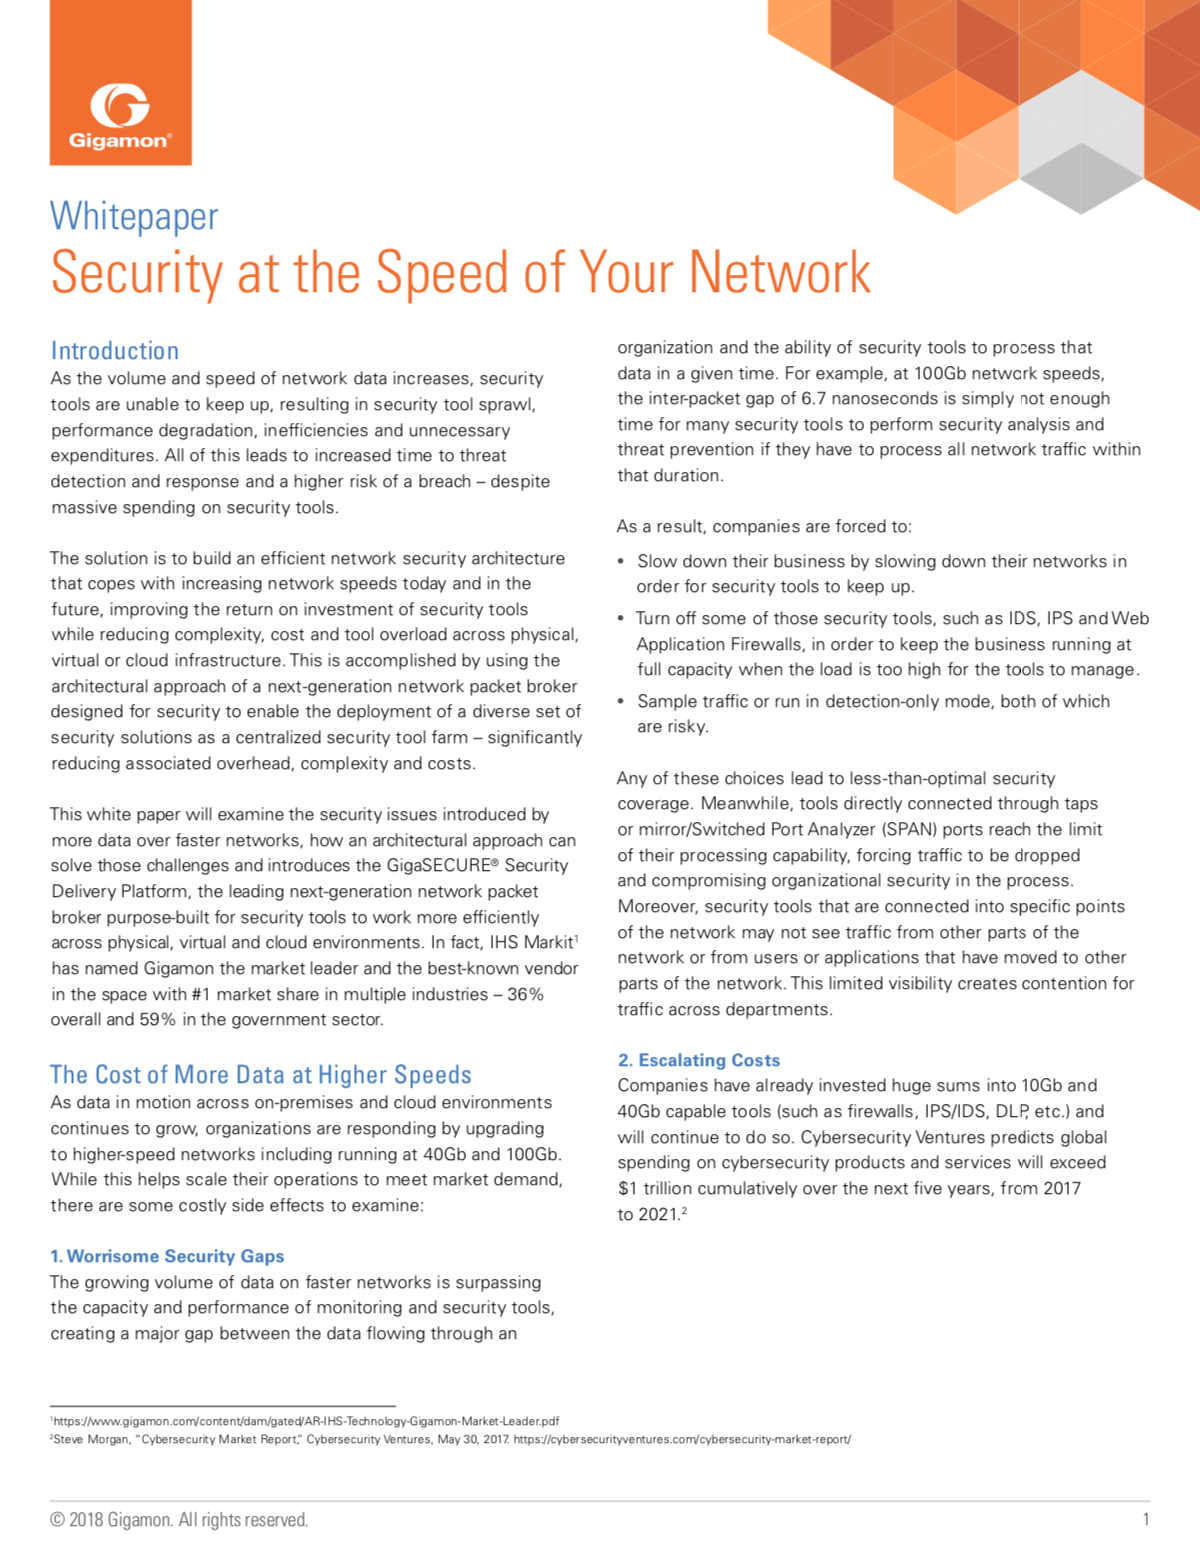 Security at the Speed of Your Network